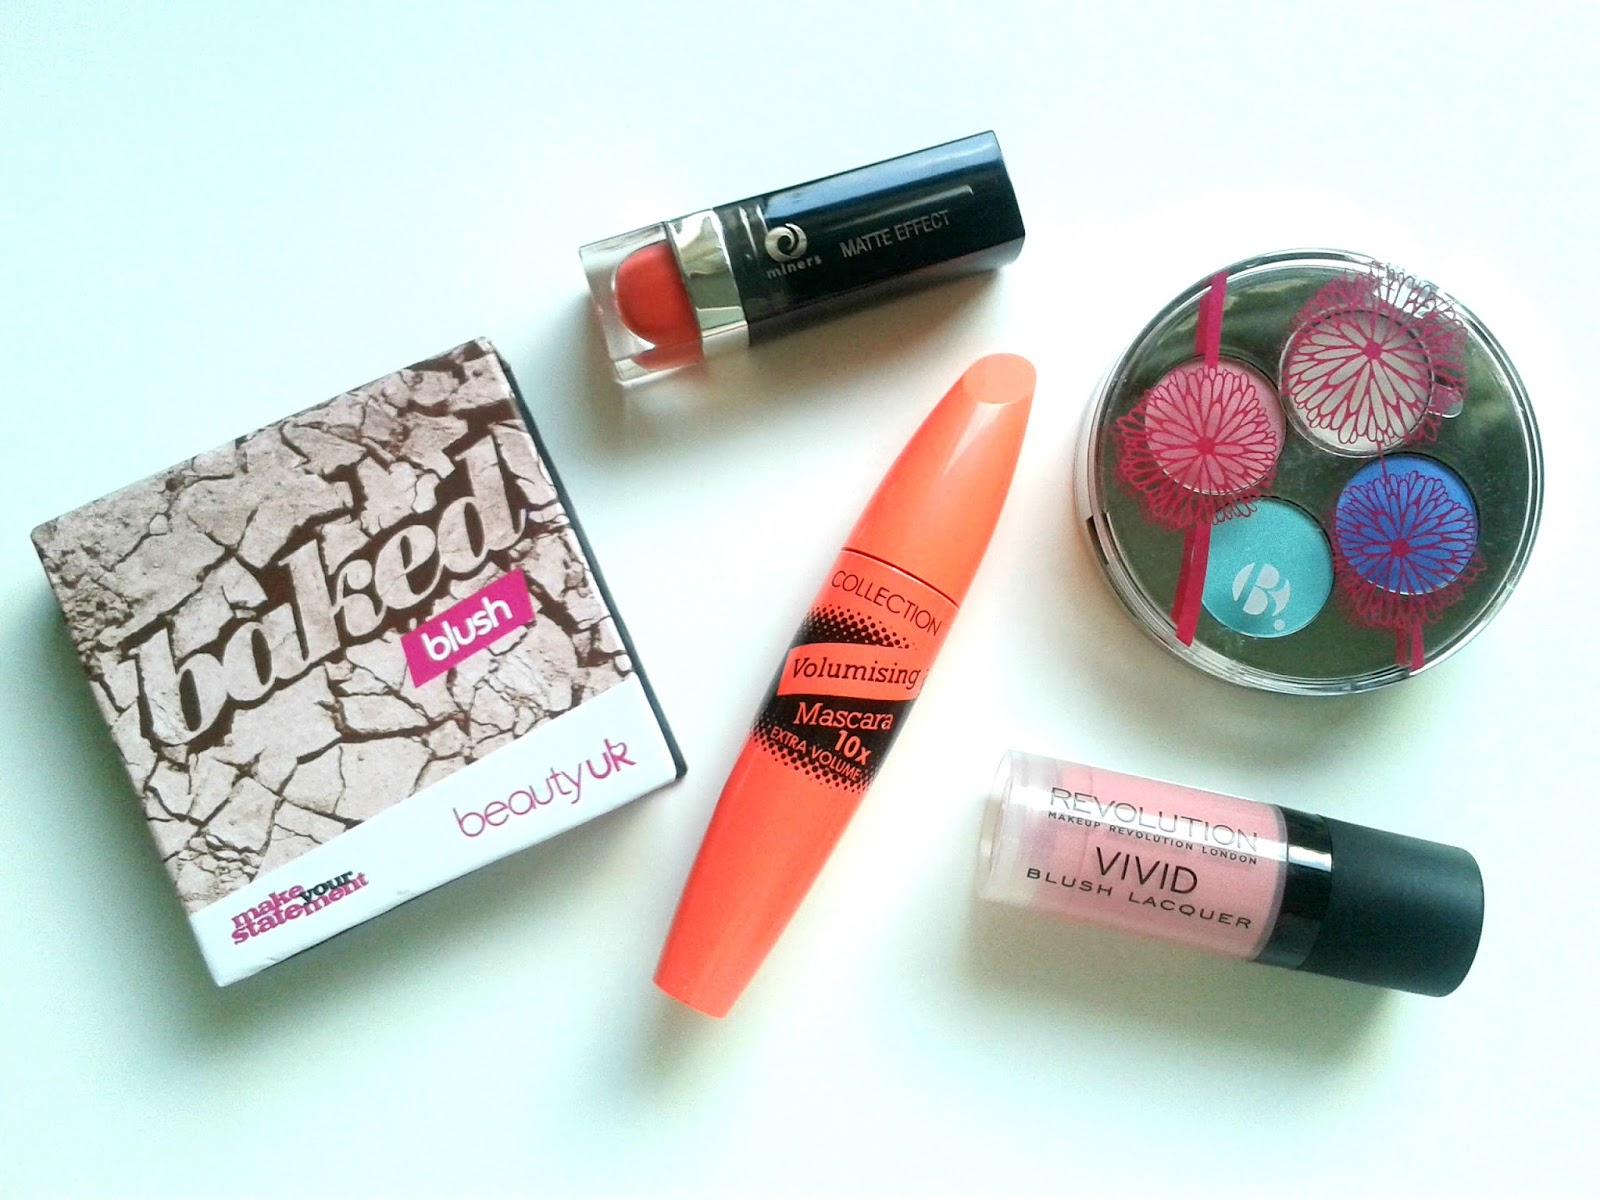 Ellis Tuesday's Summer Sun-days: Drugstore Make-up Beauty Review Makeup Revolution Collection Beauty UK Miners B. Superdrug